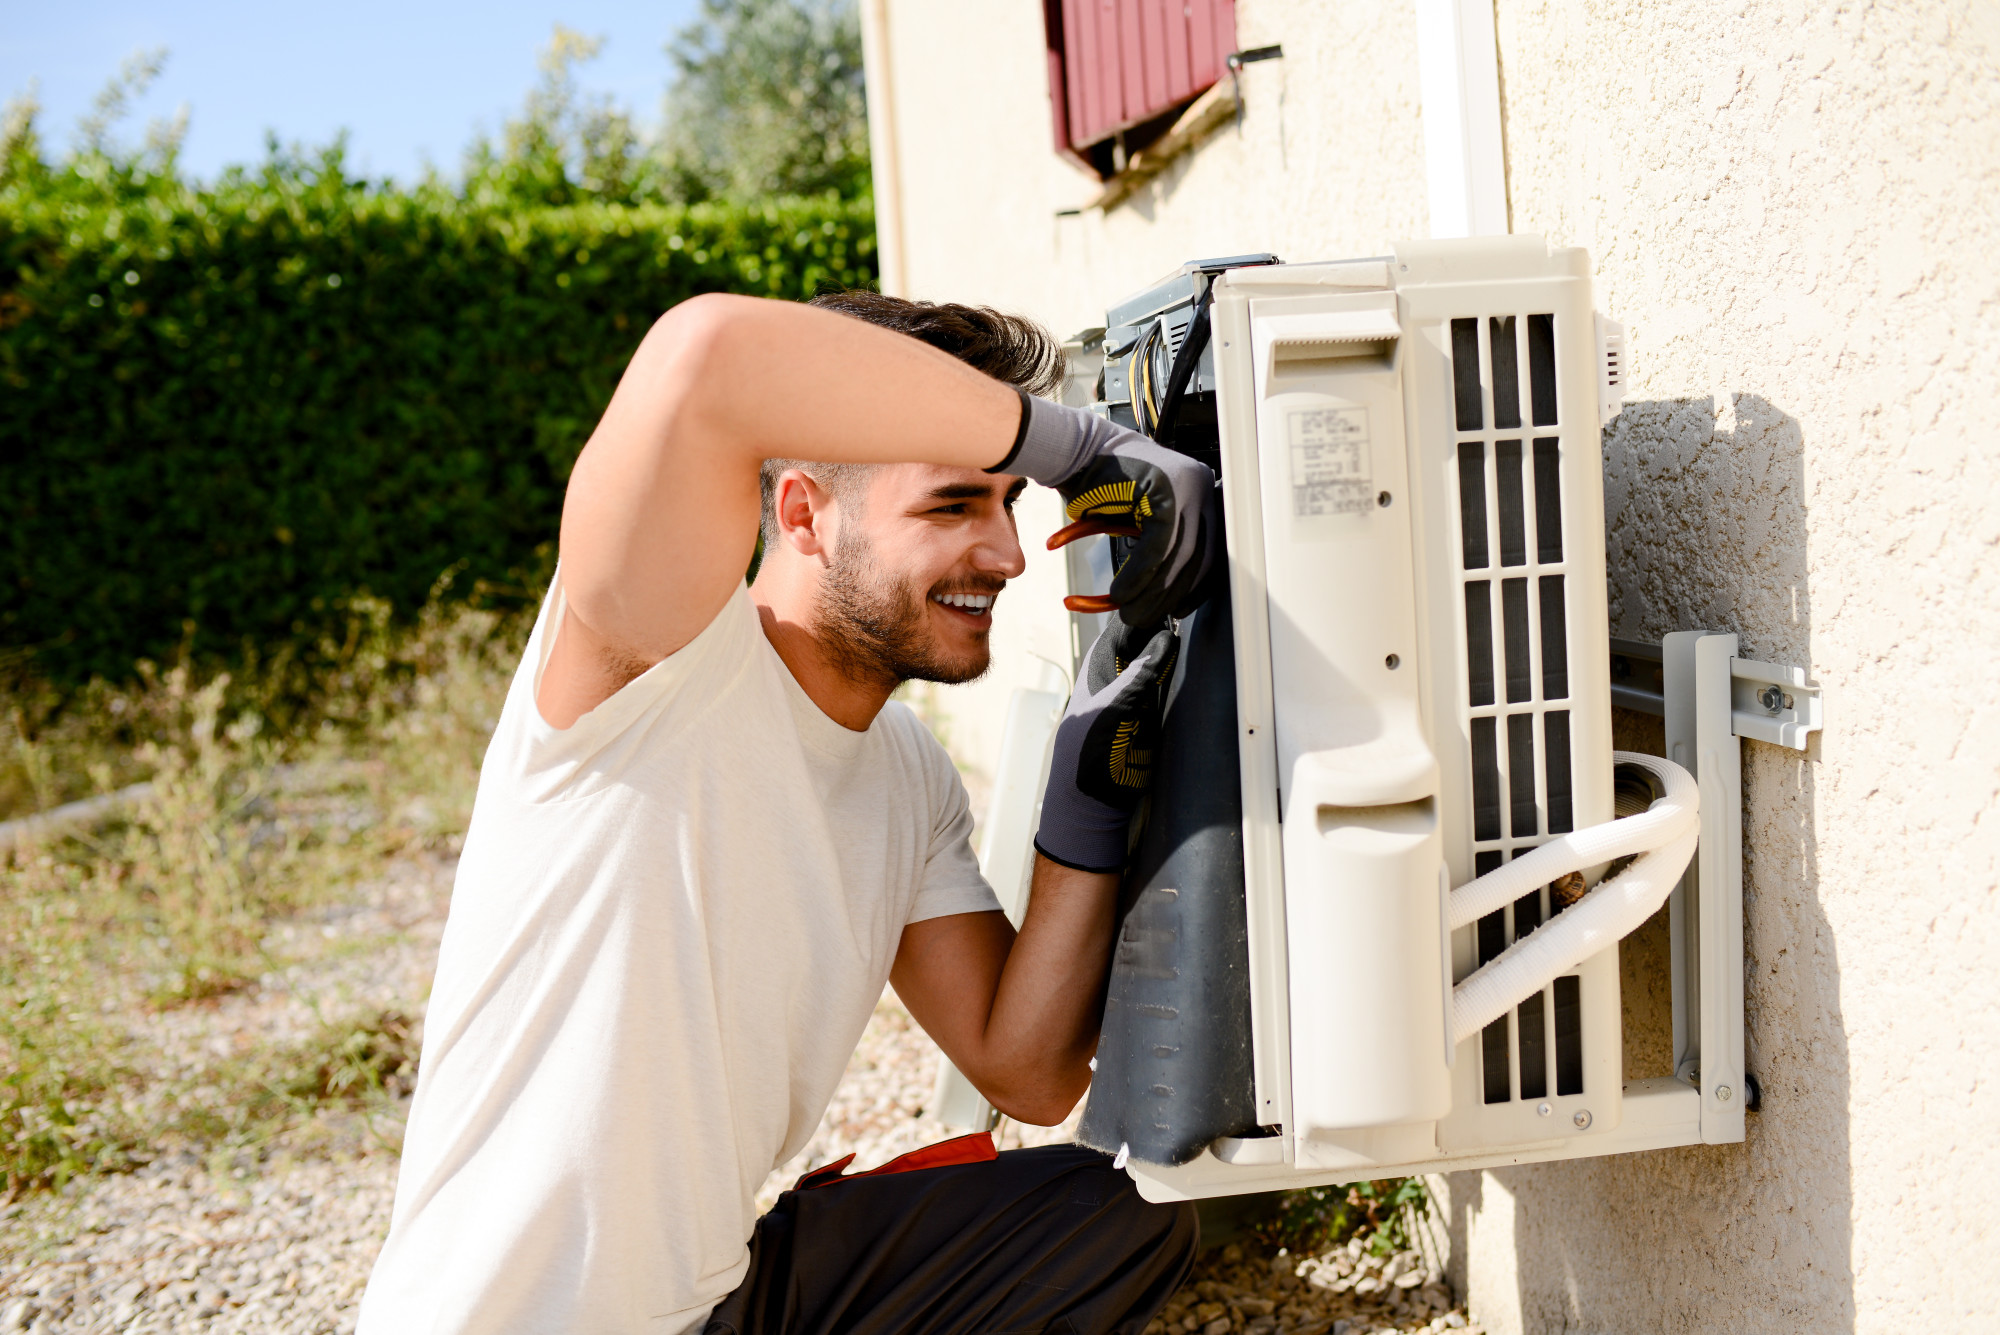 Keep Cool With These 5 Summer AC Maintenance Tips